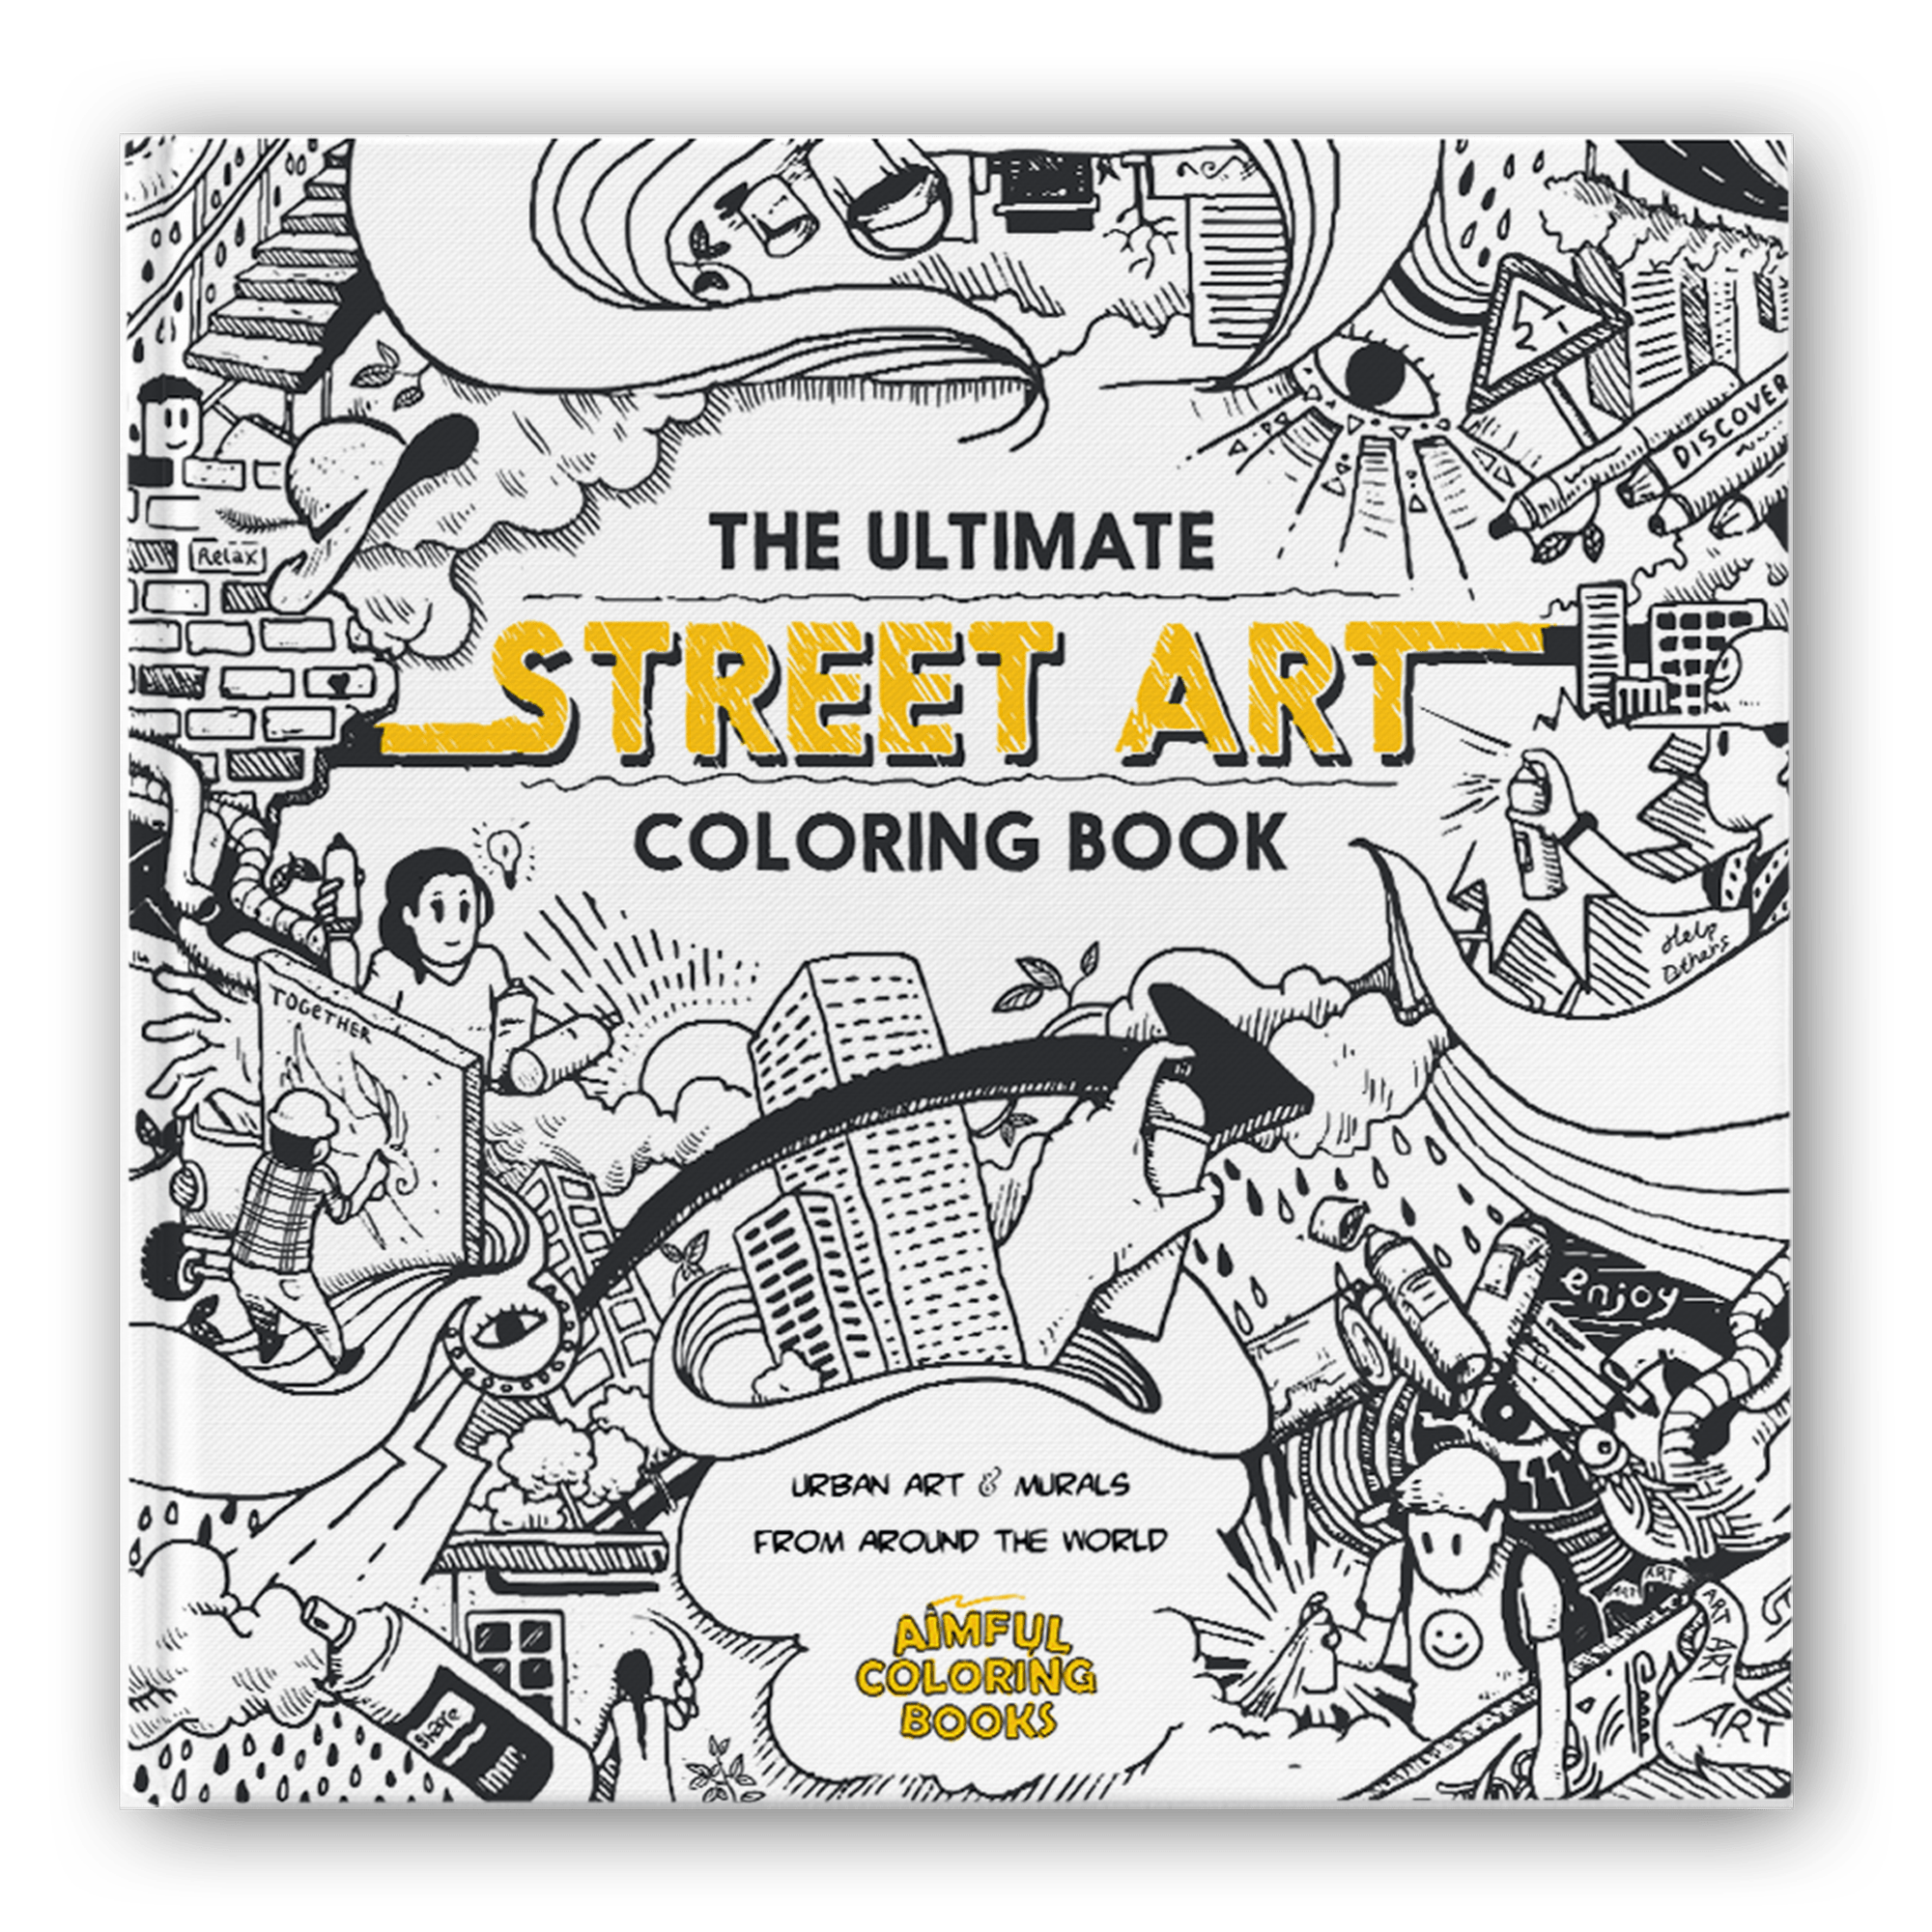 - The Ultimate Street Art Coloring Book